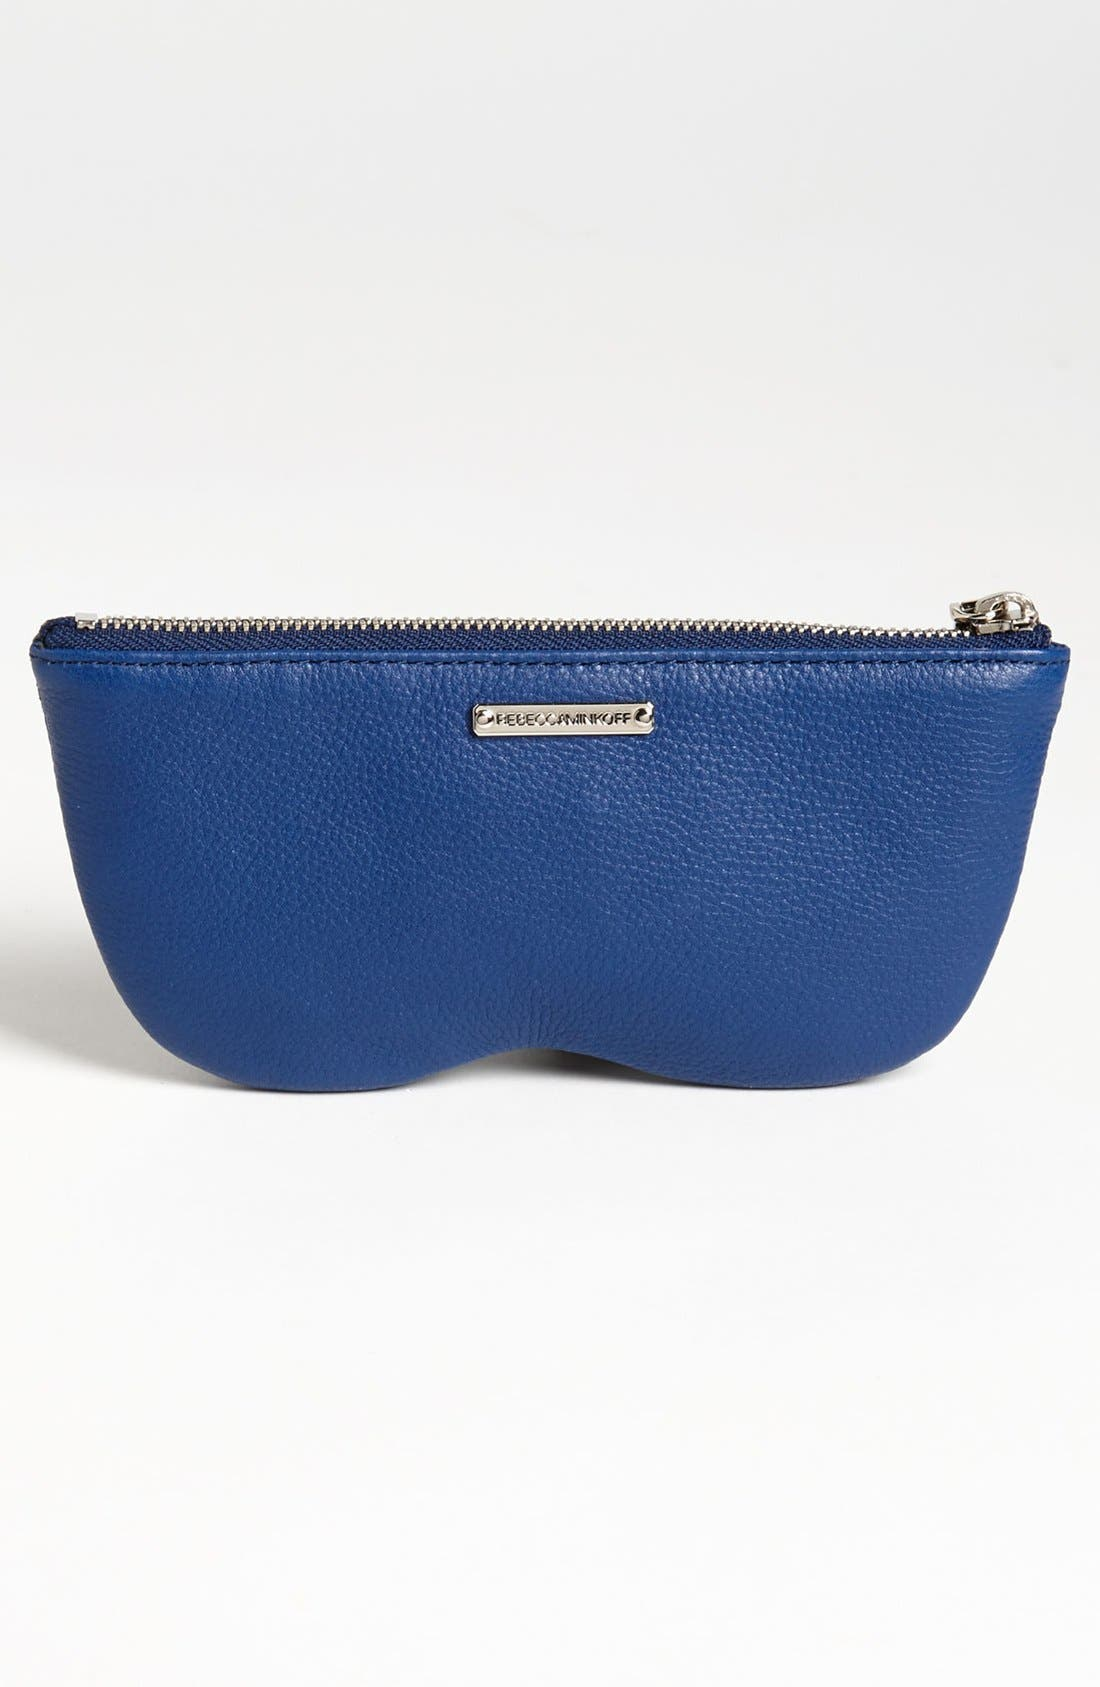 Alternate Image 2  - Rebecca Minkoff Leather Sunglasses Case (Online Only)